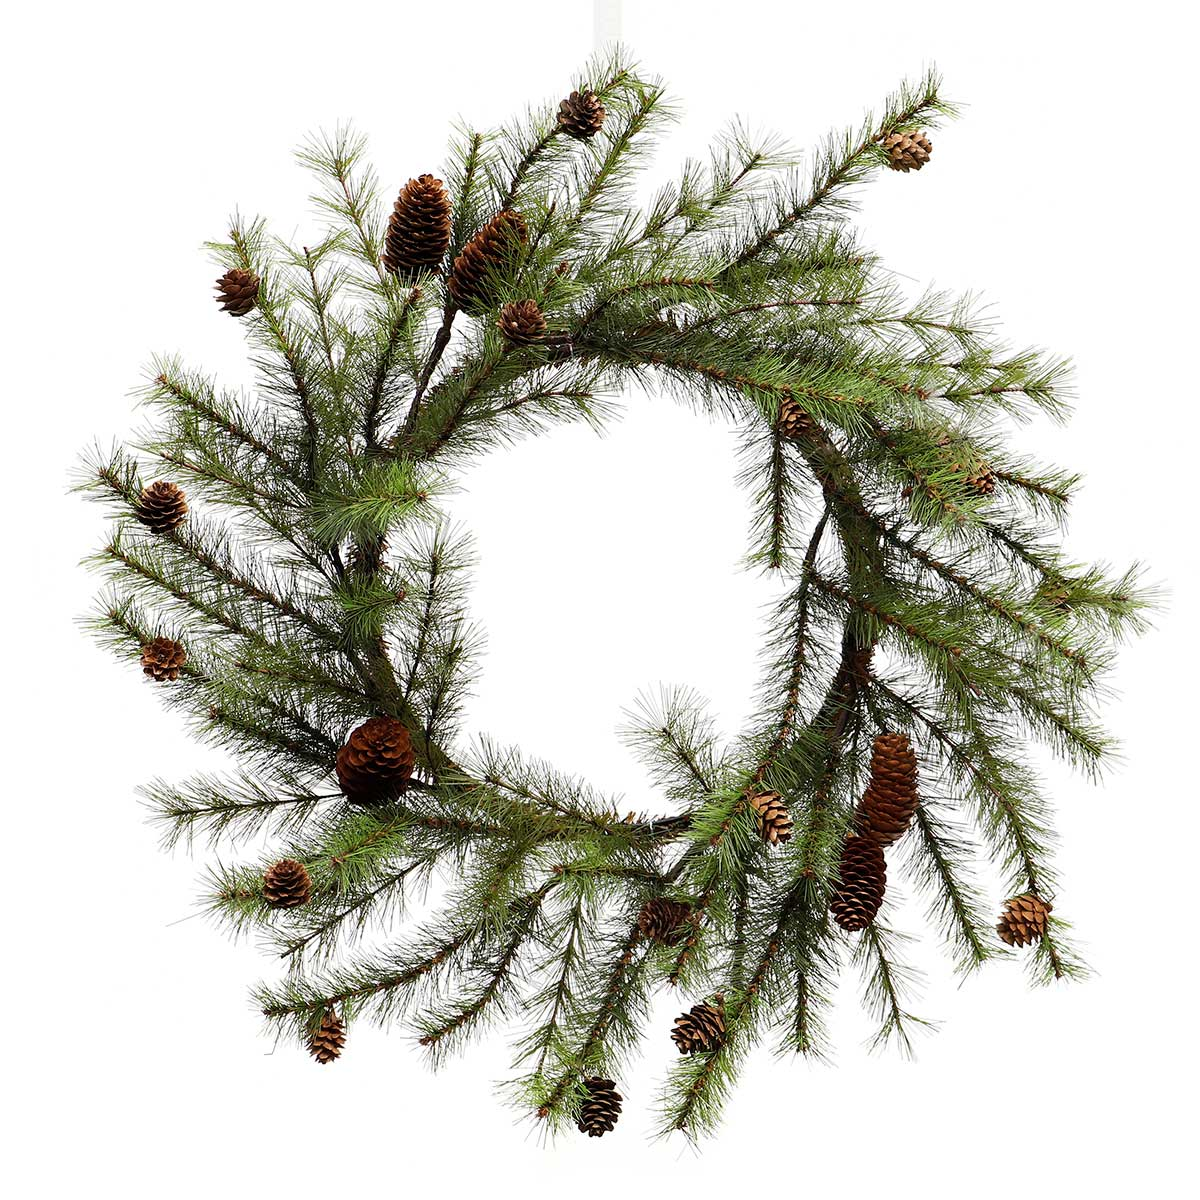 LODGE PINE WREATH